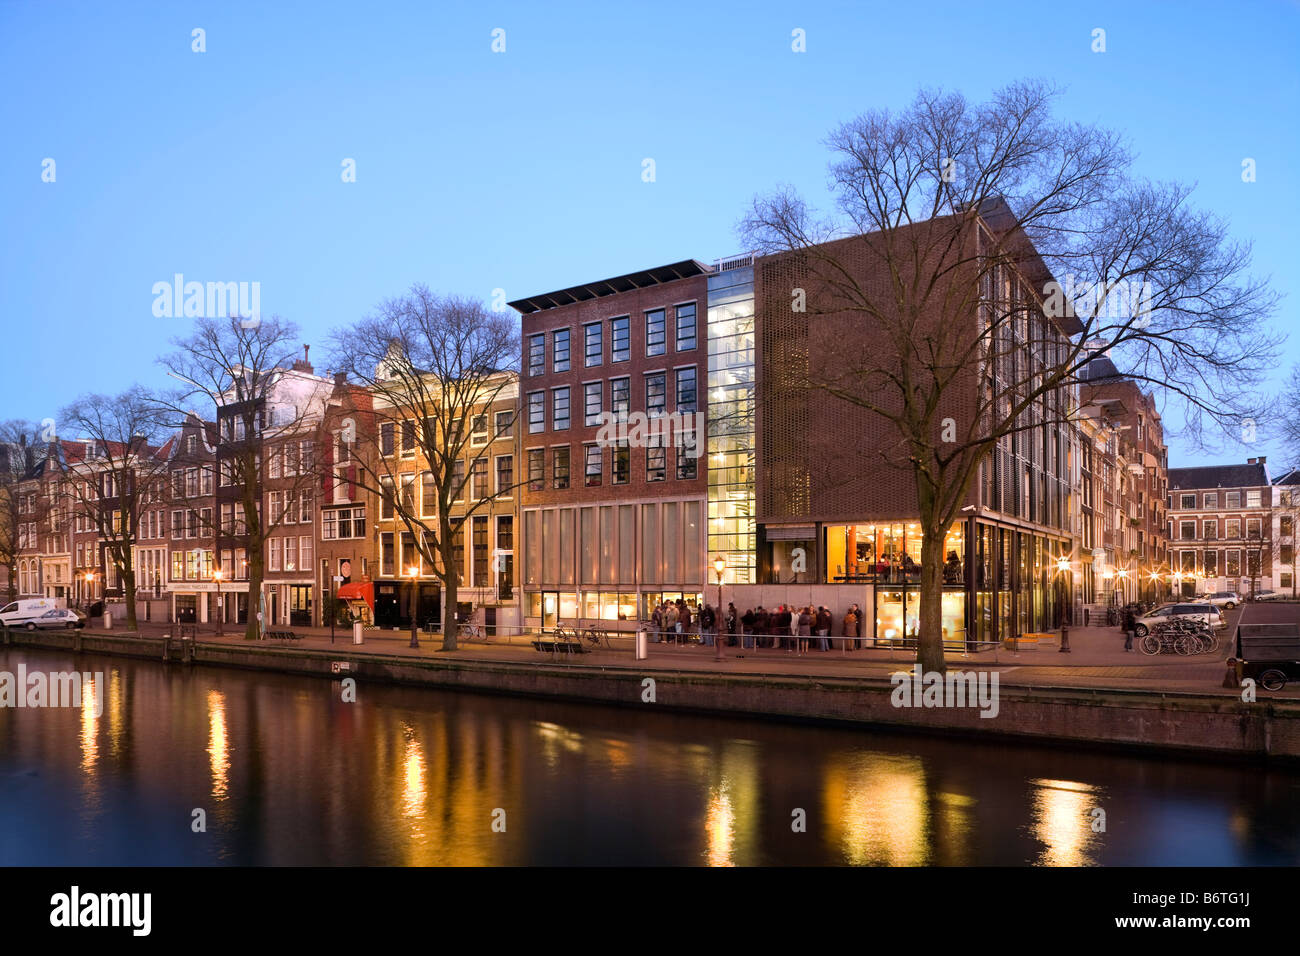 Anne Frank Huis, House and Museum on the Prinsengracht Canal in Amsterdam, the Netherlands; Holland. At dusk in - Stock Image